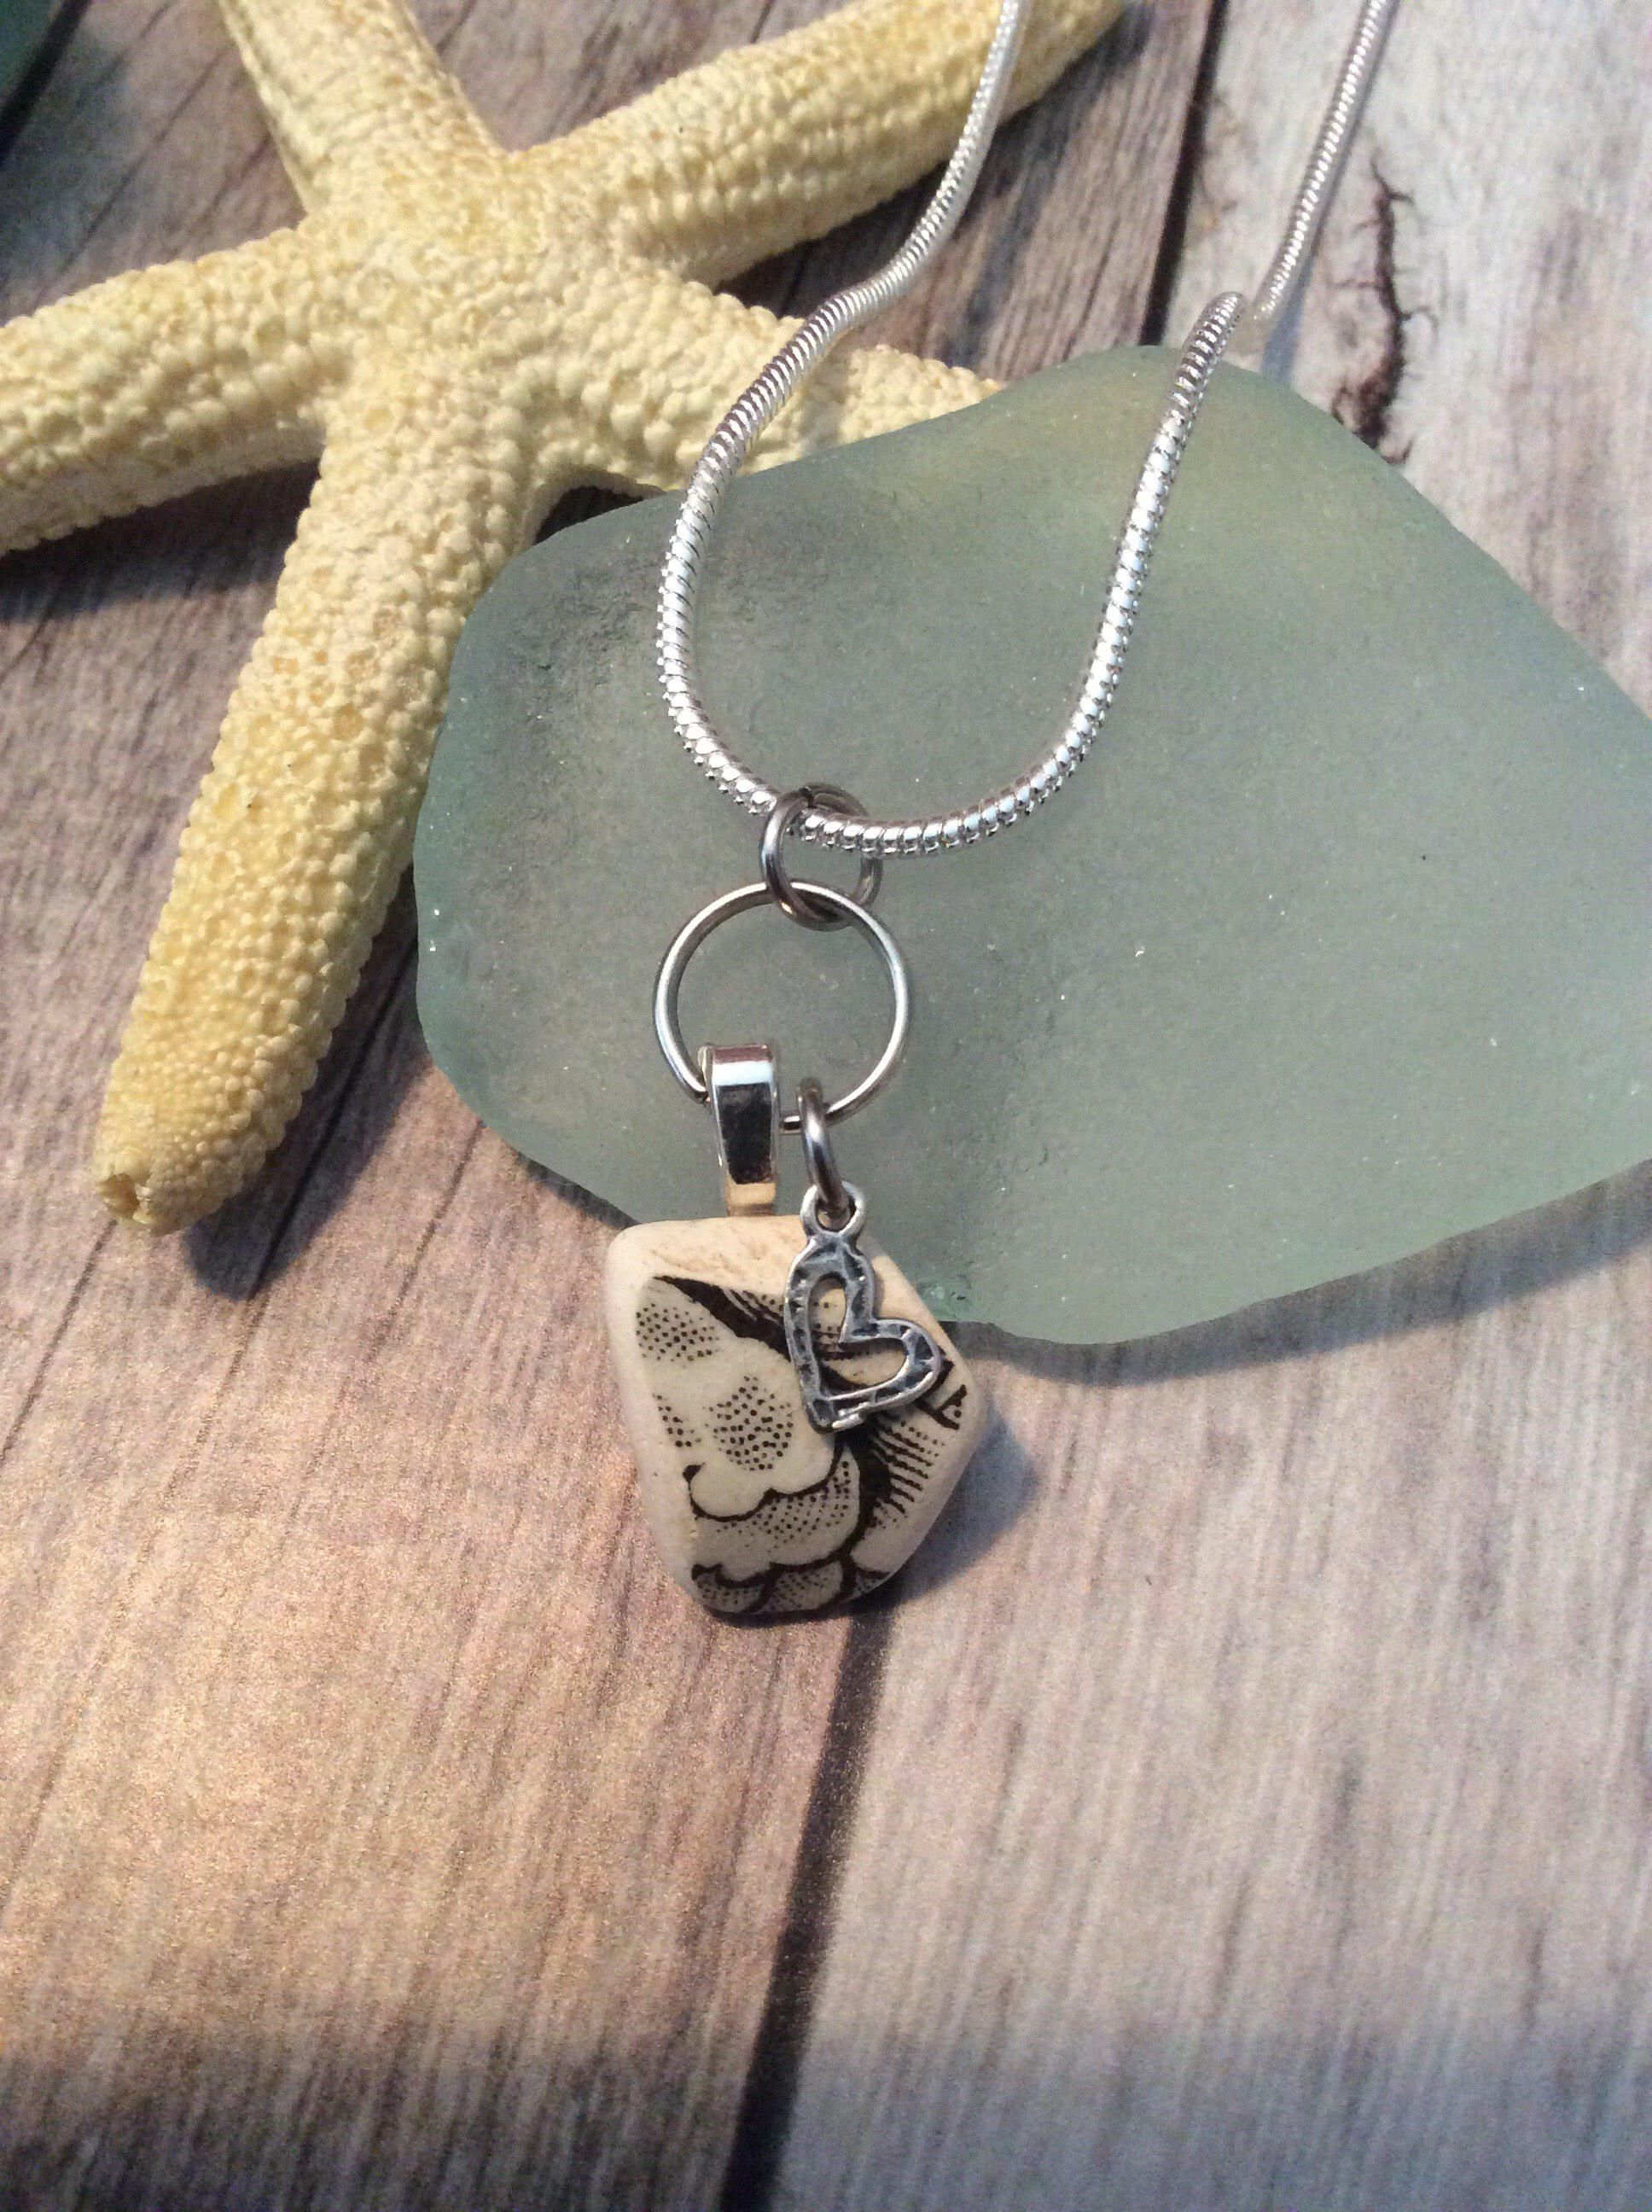 Pottery Shard  / Sea Glass Necklace by JNsArtnTreasures on Etsy https://www.etsy.com/listing/567083097/pottery-shard-sea-glass-necklace